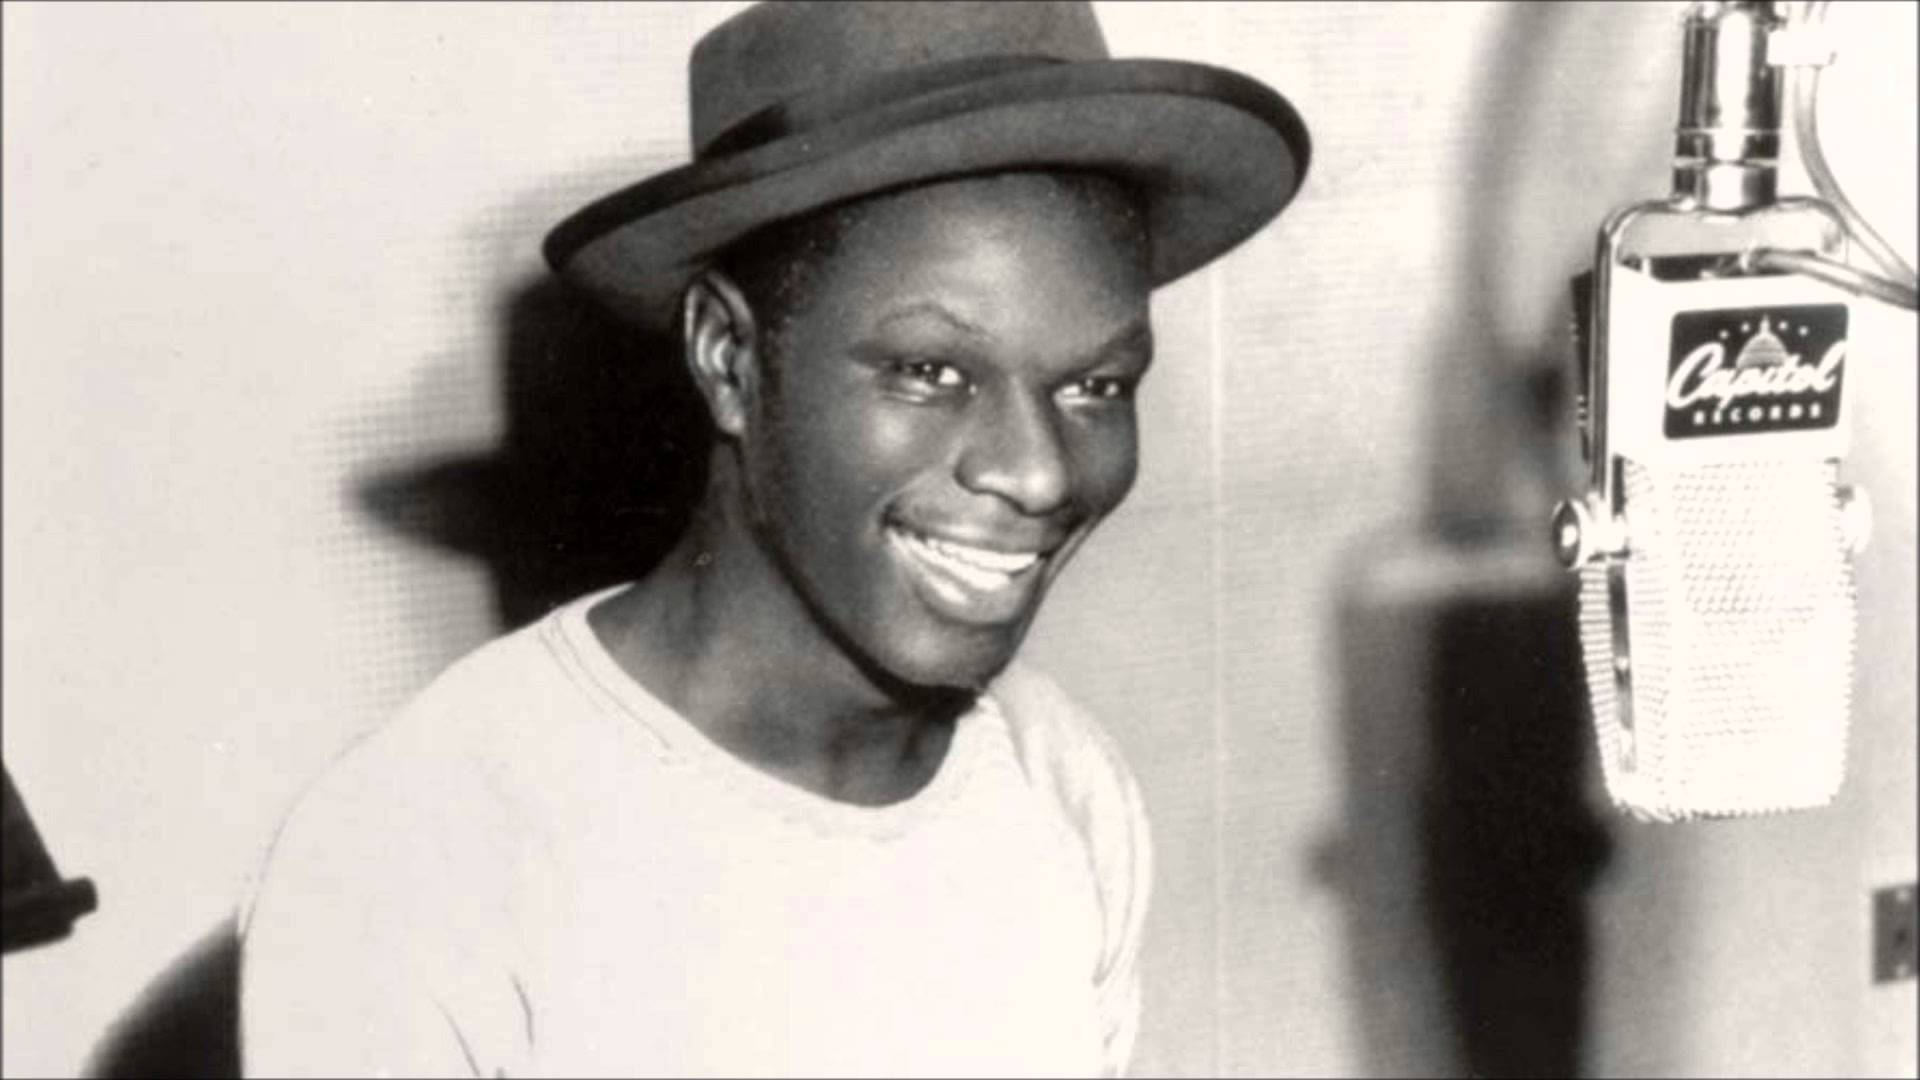 Nat King Cole (Image via youtube.com)